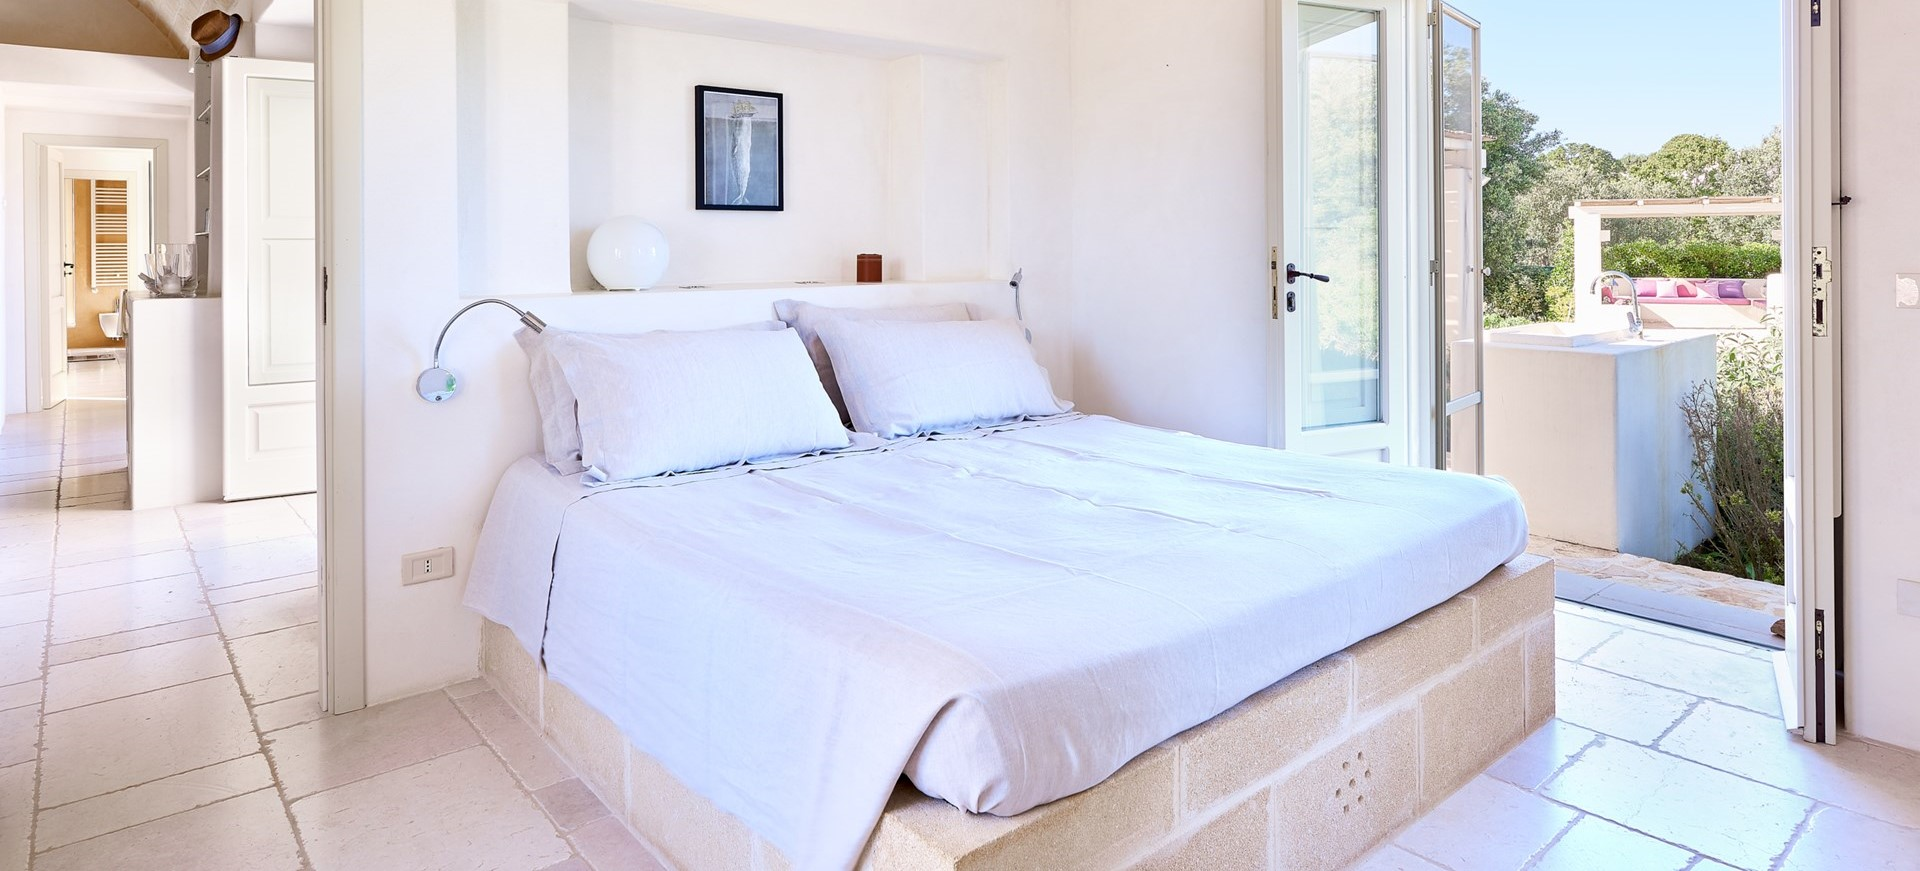 villa-verbena-puglia-double-bedroom-2